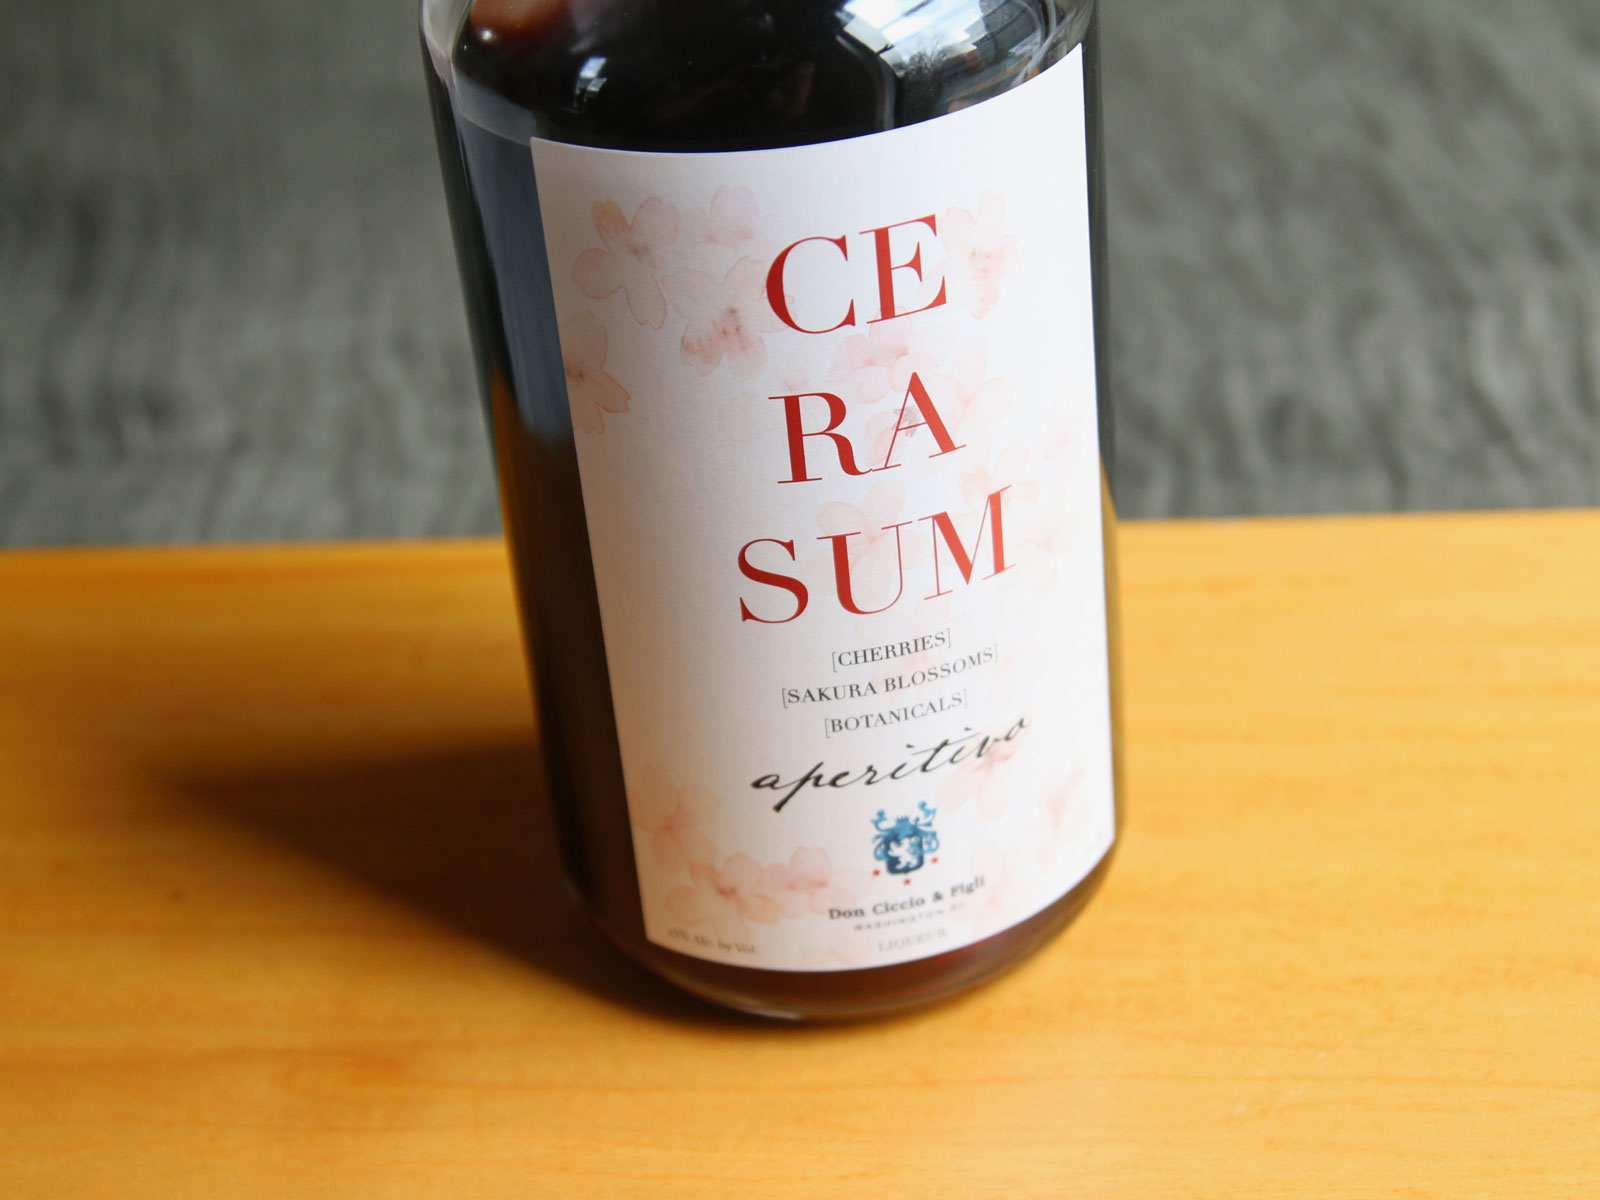 Cerasum Cocktails